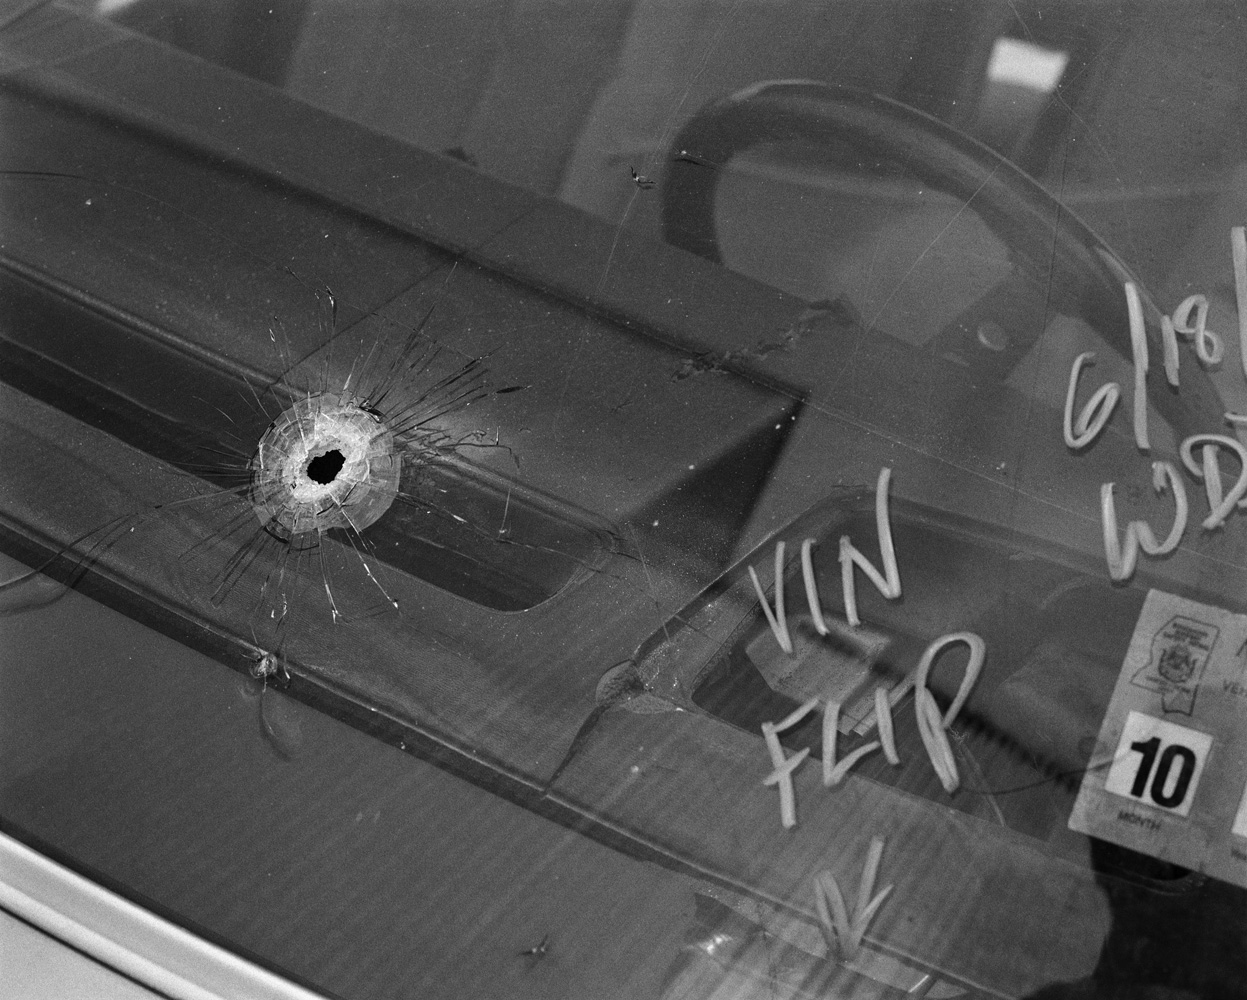 A bullet hole in a car windscreen. The owner of the vehicle saw two young men attempting to steal his car from his driveway. He opened fire on them from his lounge with a high-velocity deer-hunting rifle, killing one man and wounding the other. Police valued the car at $900.